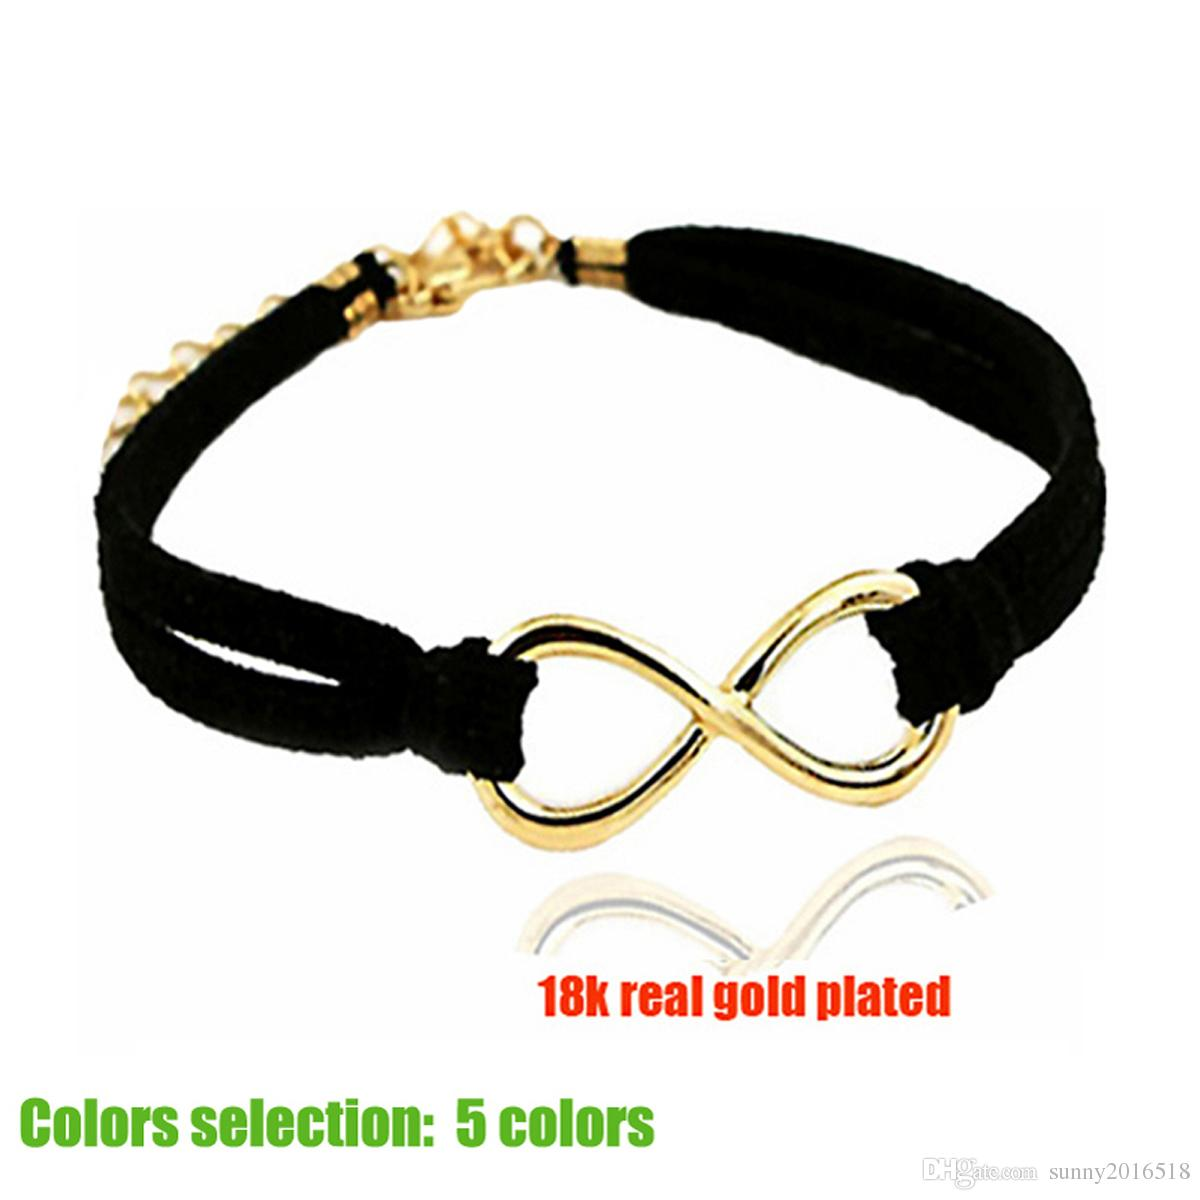 New gold infinity bracelets black leather chain infinity symbol new gold infinity bracelets black leather chain infinity symbol charm bracelet for women simple fashion bangles casual jewelry party gifts kids charm biocorpaavc